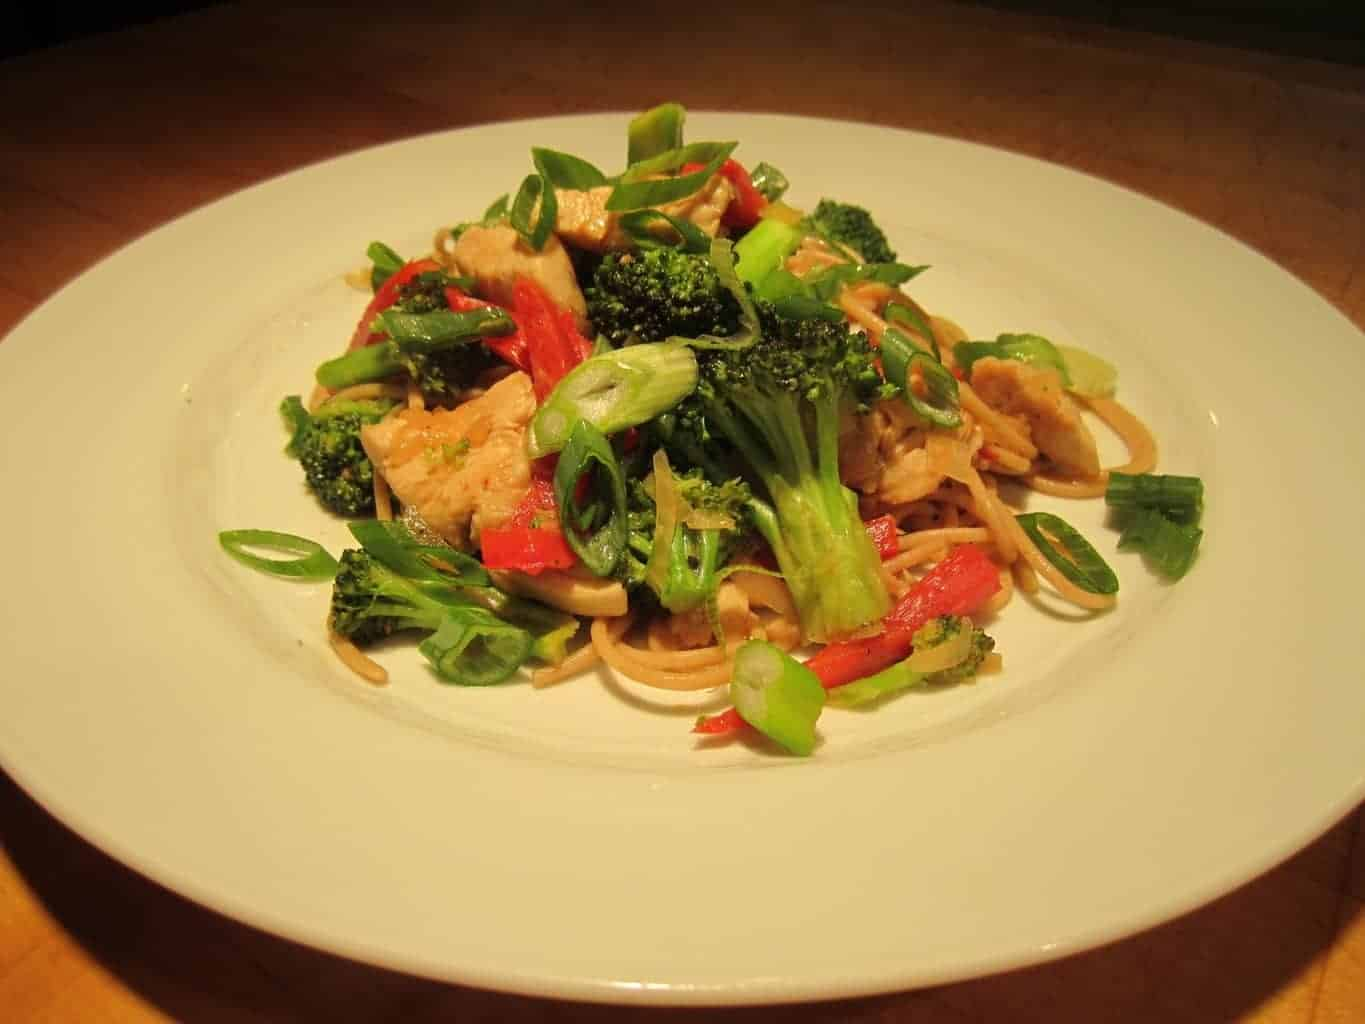 Chicken, Broccoli and Noodles in Peanut Sauce